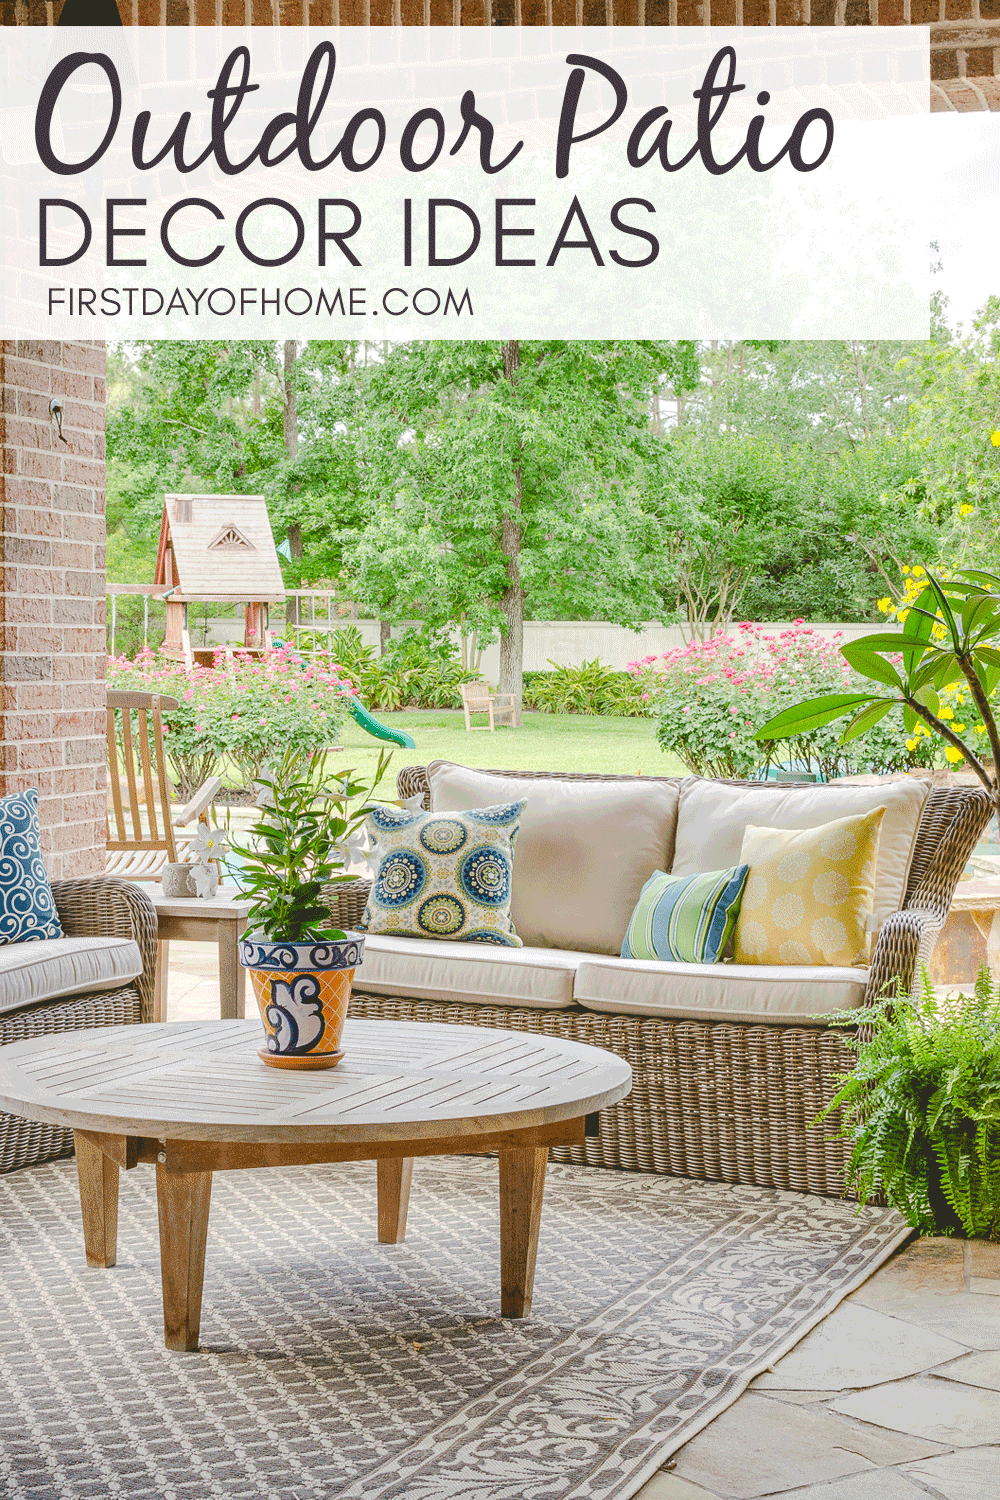 Outdoor patio decor with woven furniture, teak chat table and colorful outdoor pillows